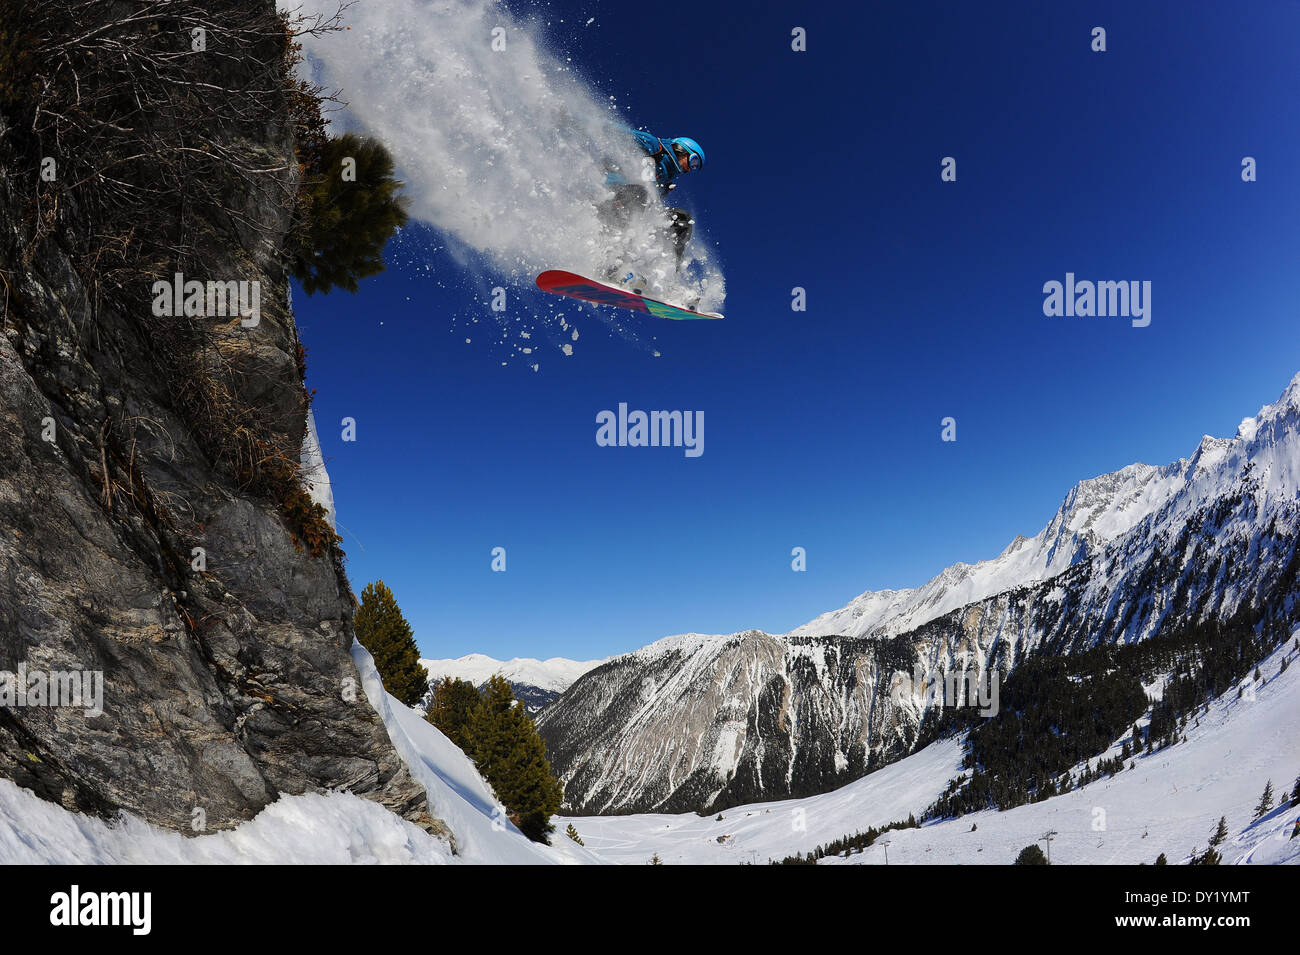 A snowboarder jumps off a cliff off piste in the French ski resort of Courchevel. - Stock Image